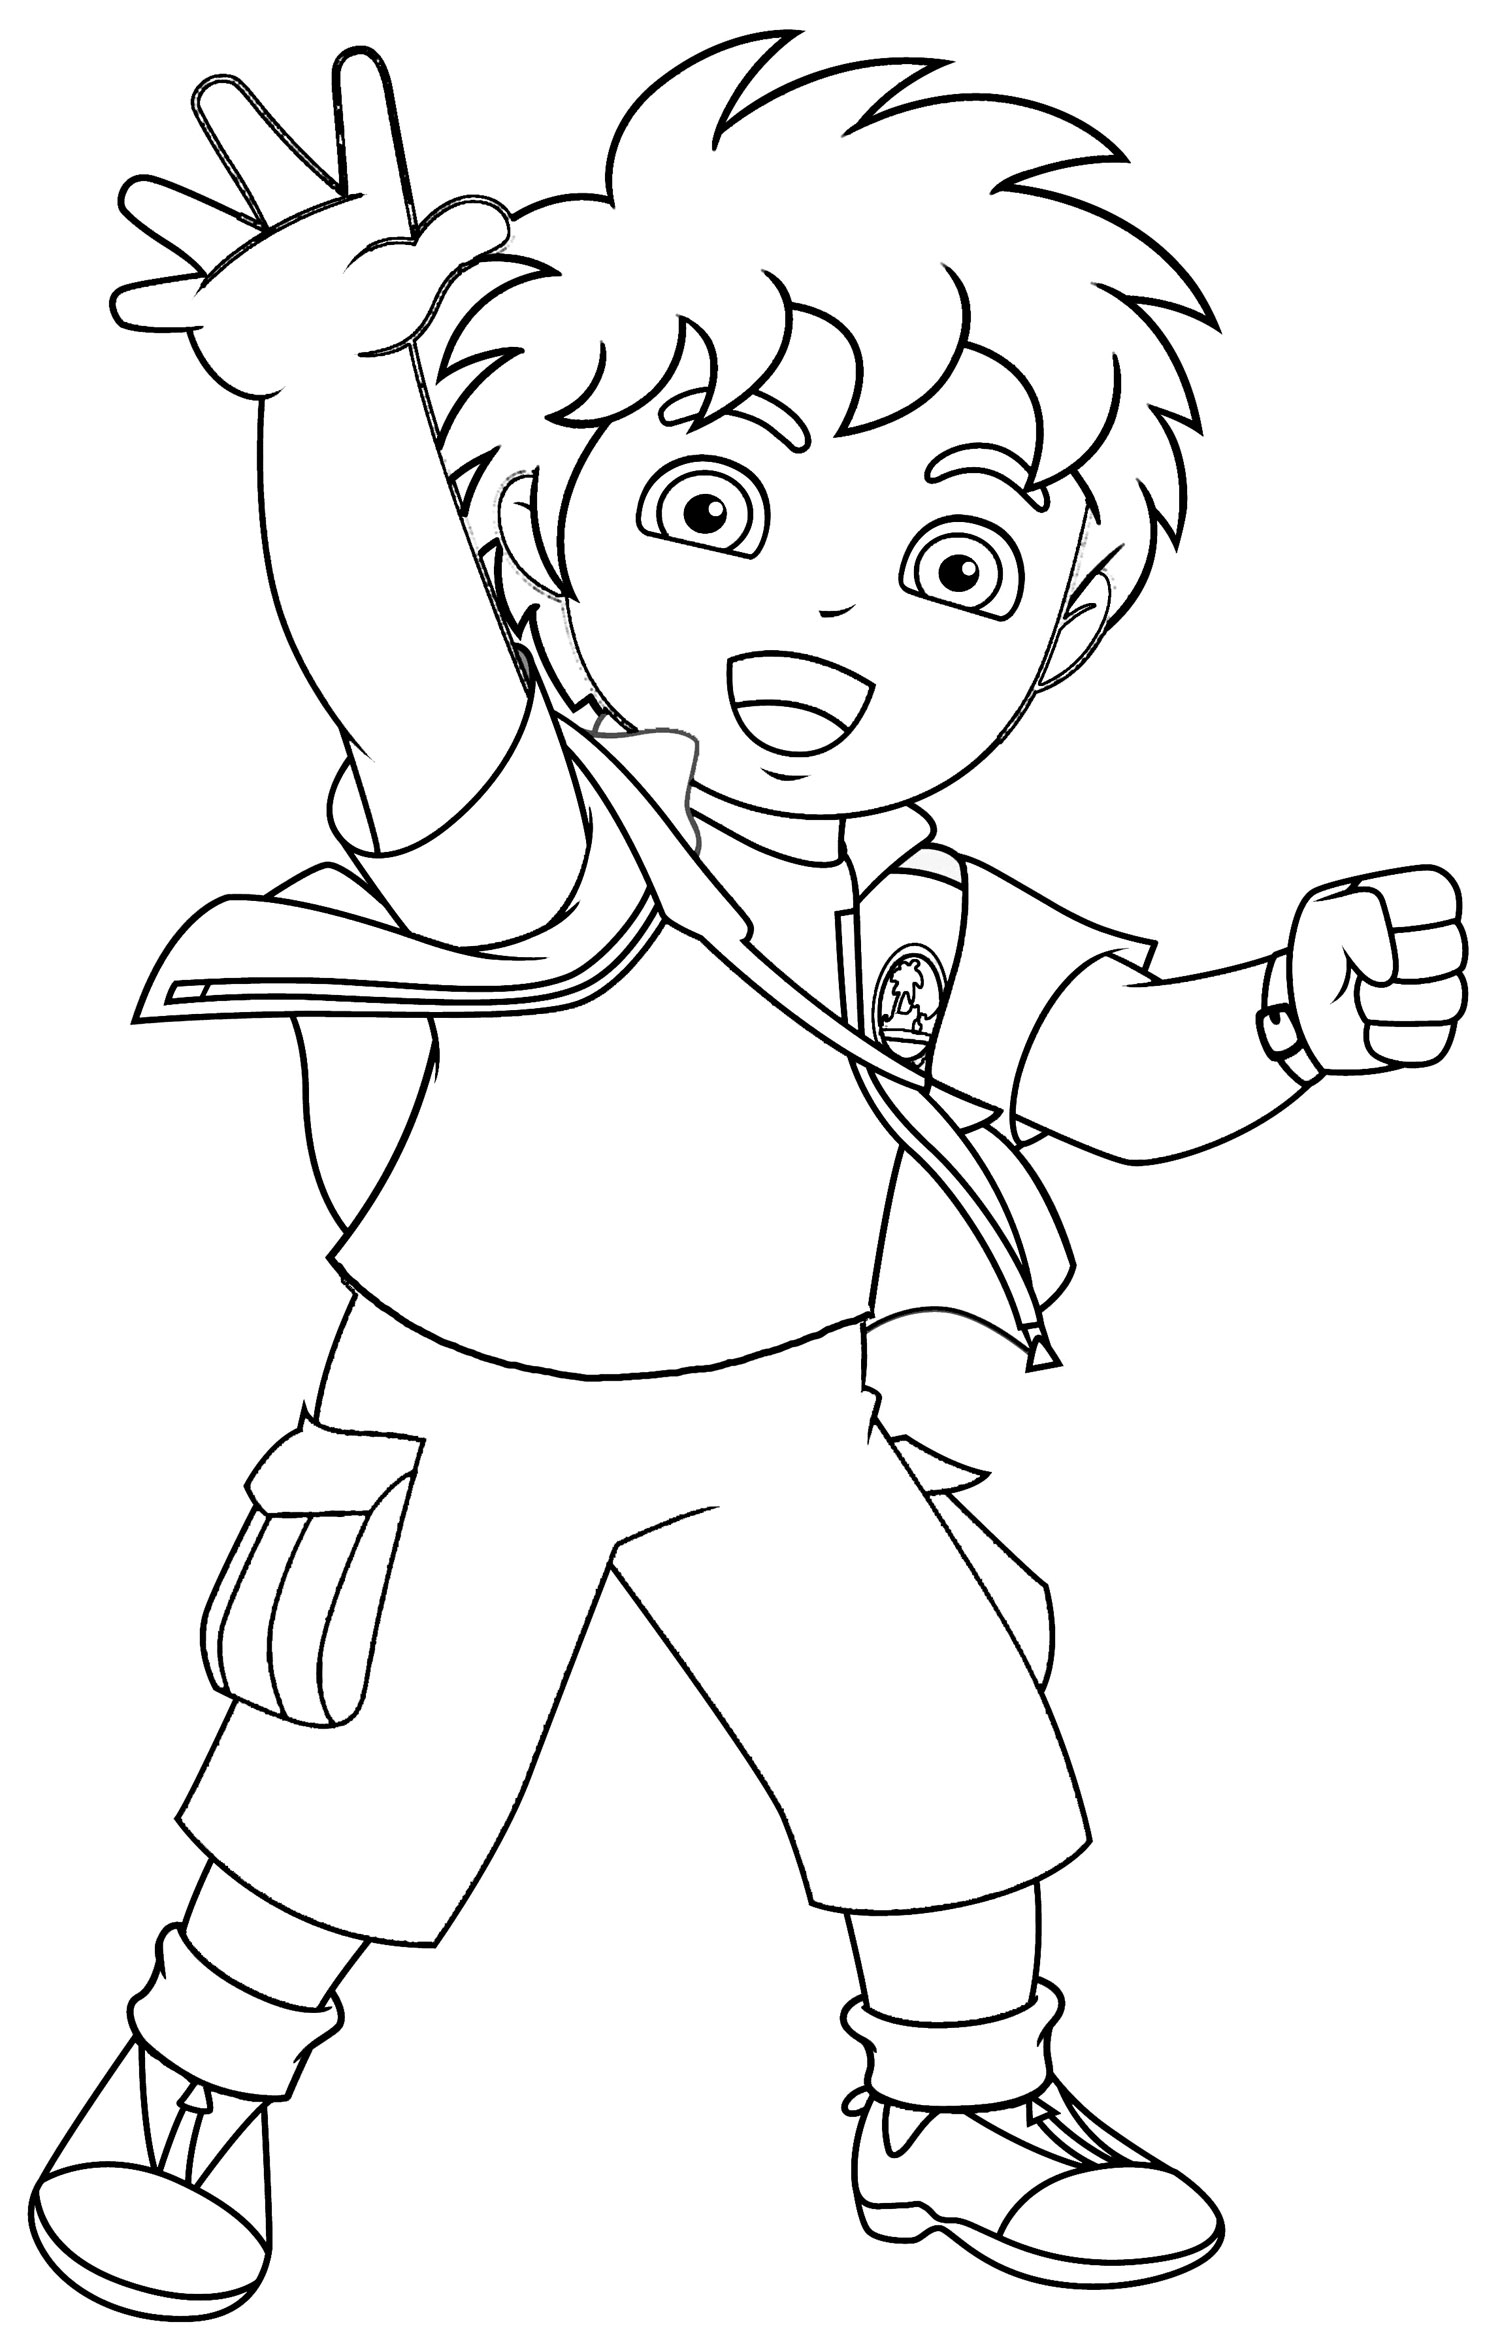 diego christmas coloring pages - photo#14